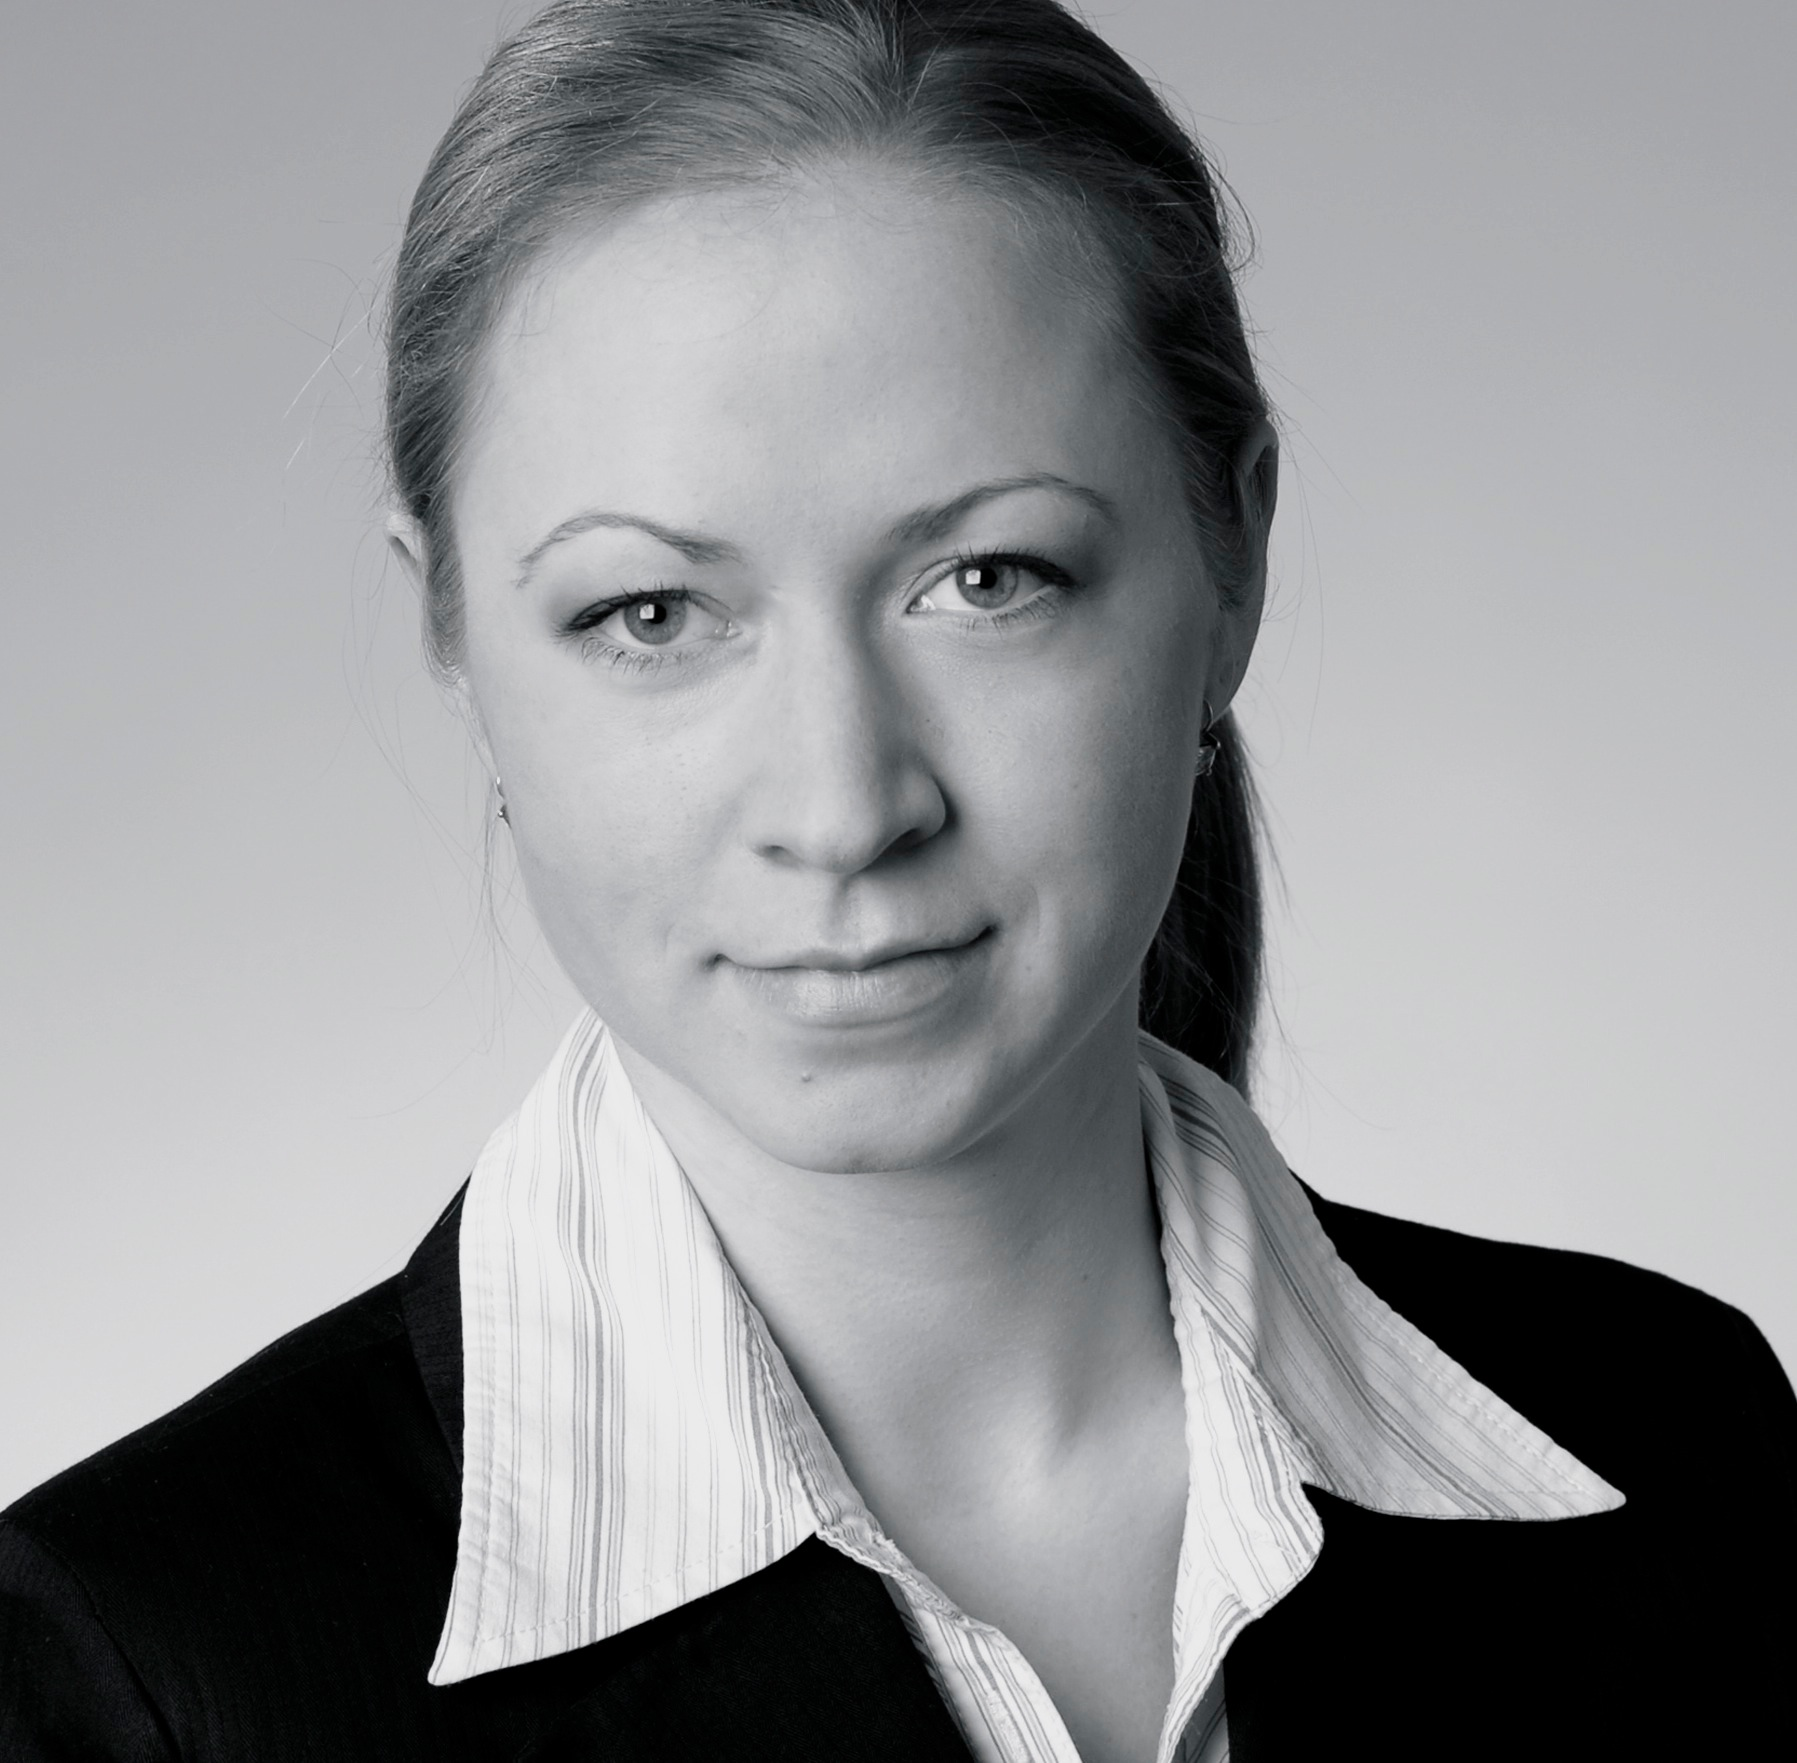 Franca Kopperger, Beraterin bei punktgenau business consulting